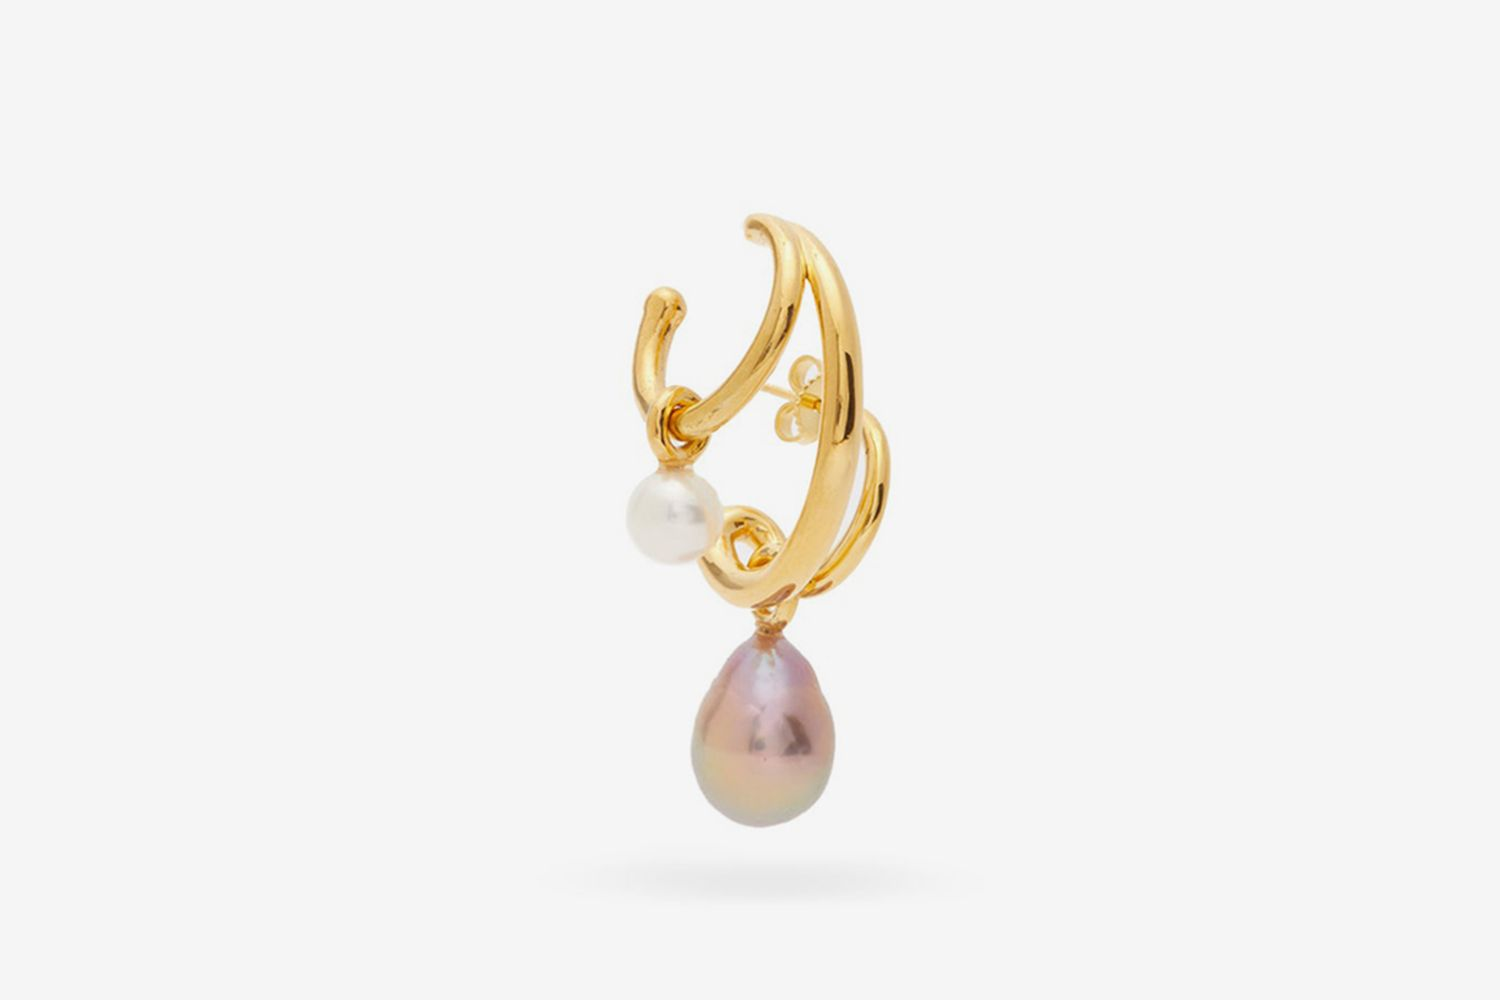 Triplet Pearl & 18kt Gold-Plated Single Earring